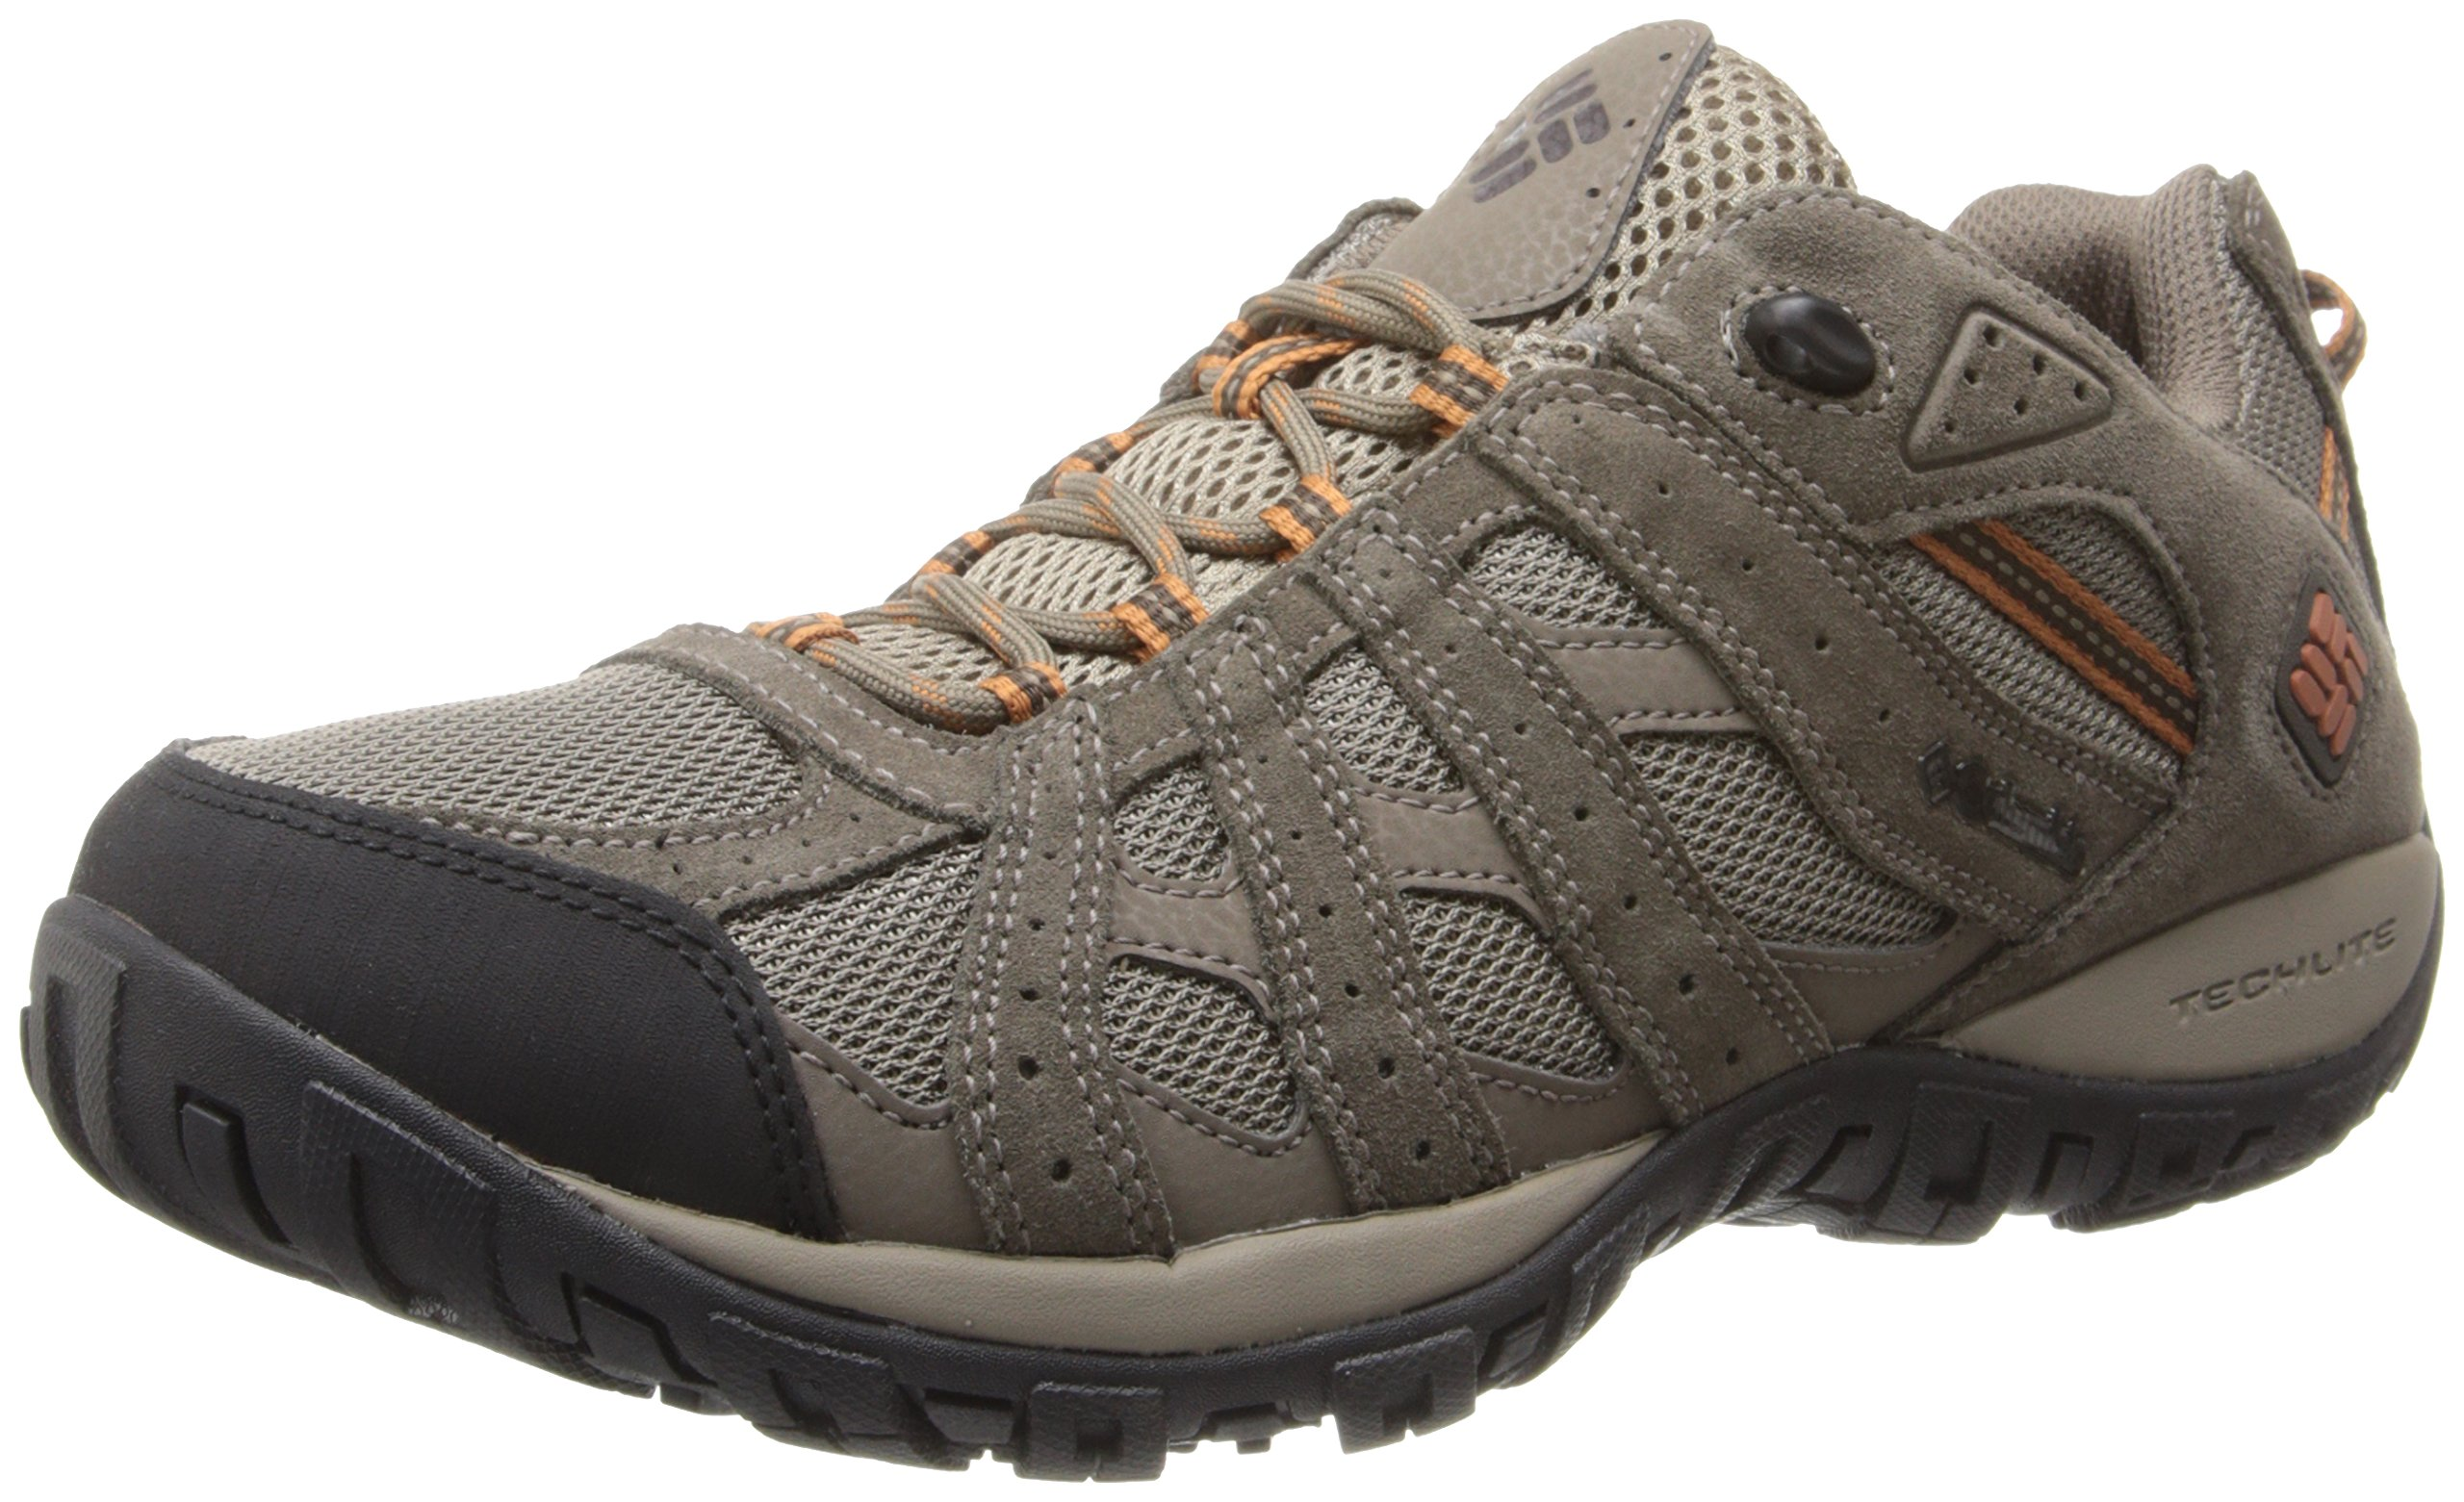 Columbia Men's Redmond Waterproof Hiking Shoe, Pebble, Dark Ginger, 12 D US by Columbia